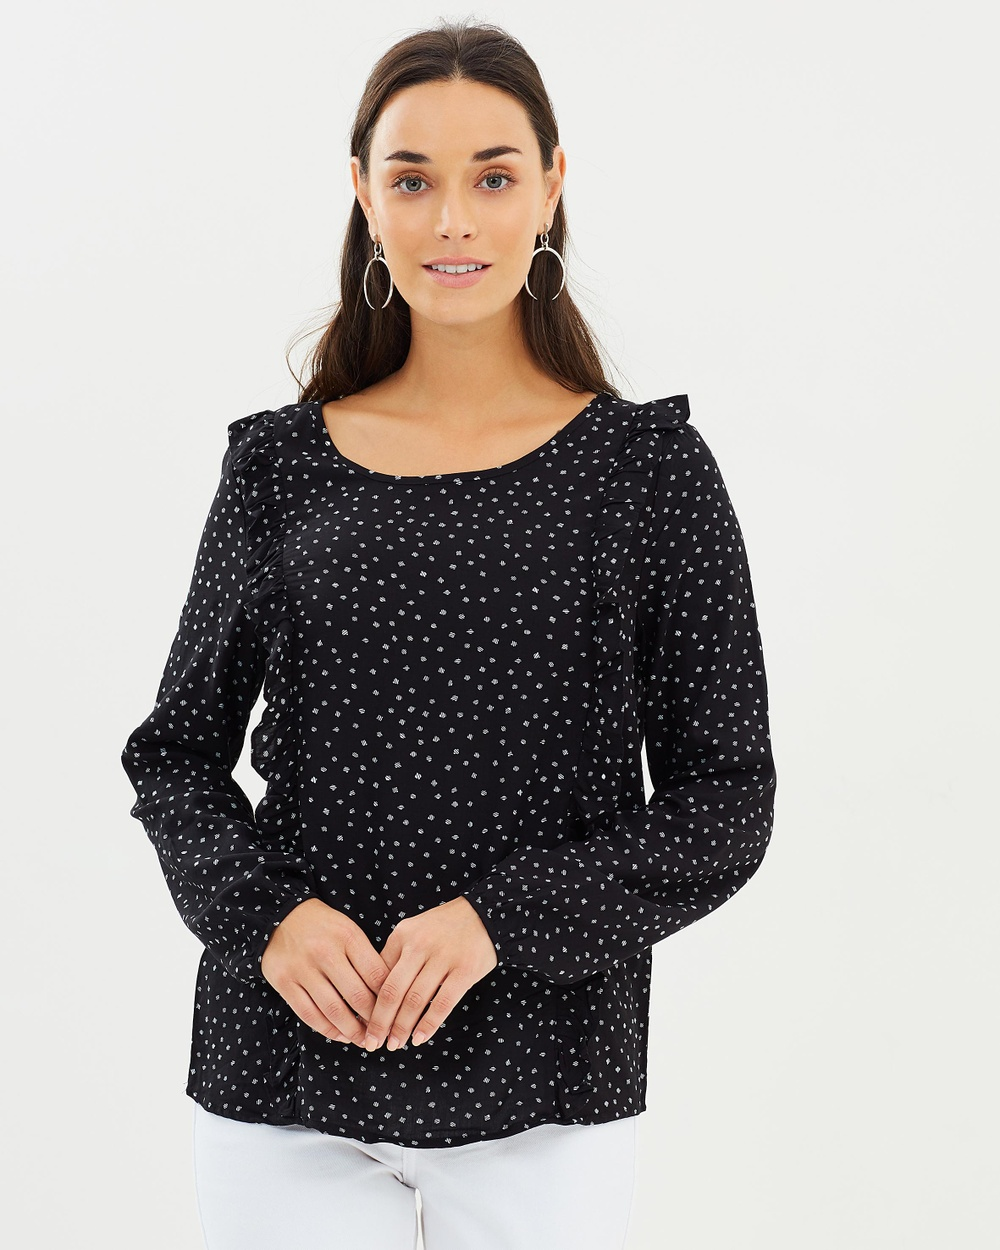 Photo of ONLY ONLY Nova Frill Top Tops Black & White Nova Frill Top - Silky smooth against the skin, the Nova Frill Top by ONLY is a staple long-sleeved shirt that's elevated by a charming dot print. Crafted from a tightly woven fabric, this top pairs seamlessly with cigarette pants and pencil skirts, making it an intelligent choice for the office. Our model is wearing a size UK 8 shirt. She is 170cm (5'7